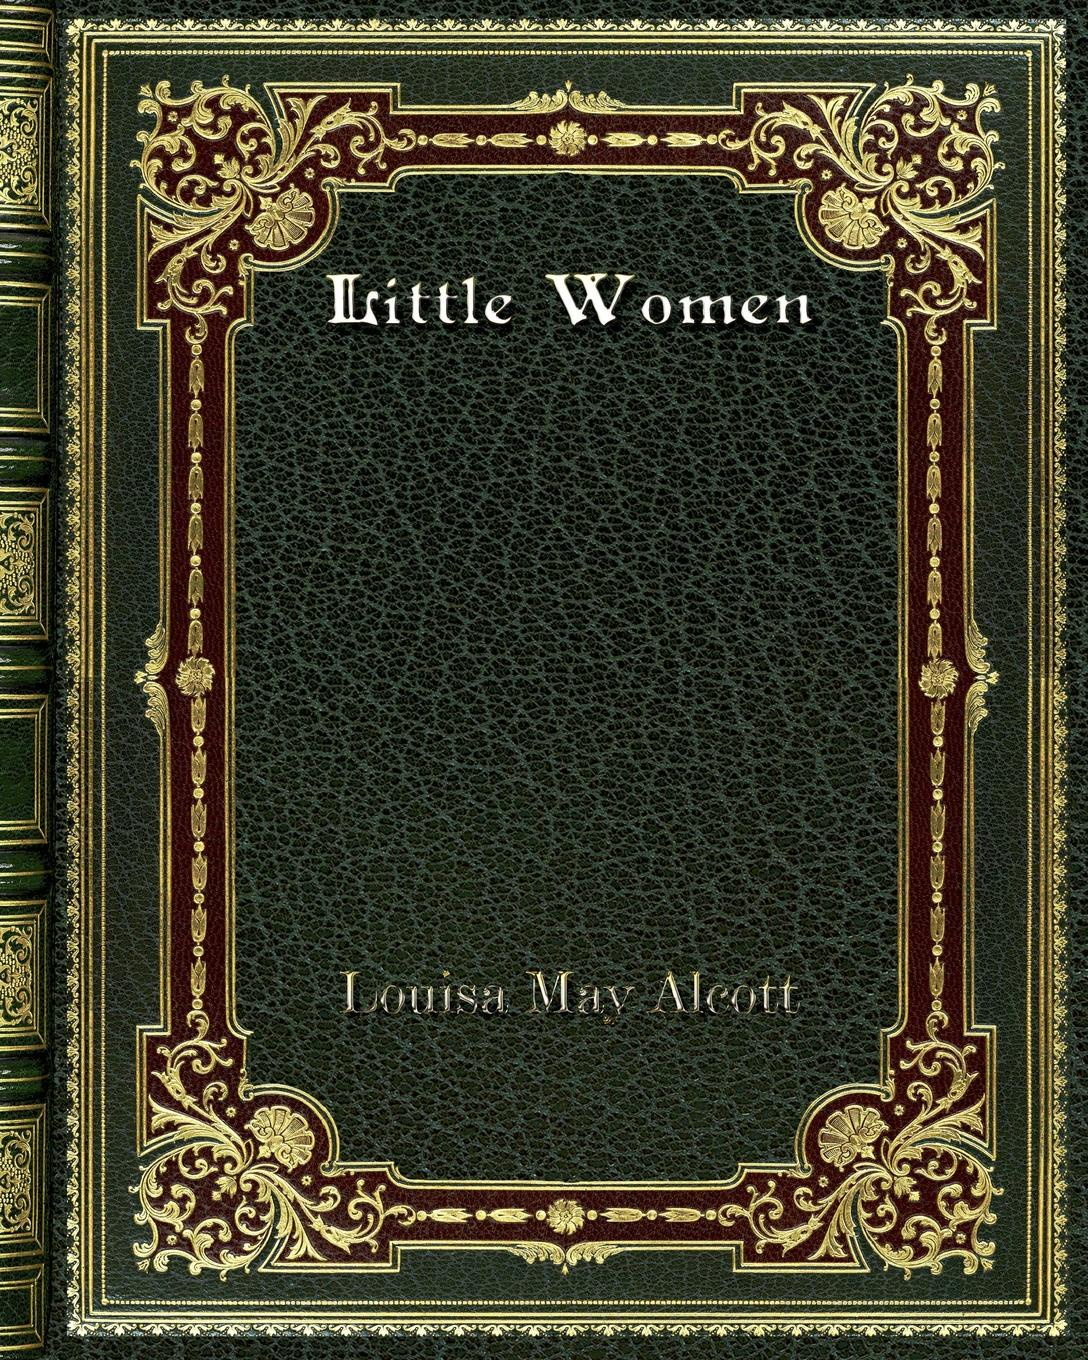 Louisa May Alcott Little Women may alcott louisa may alcott alcott louisa may jack and jill louisa may alcott